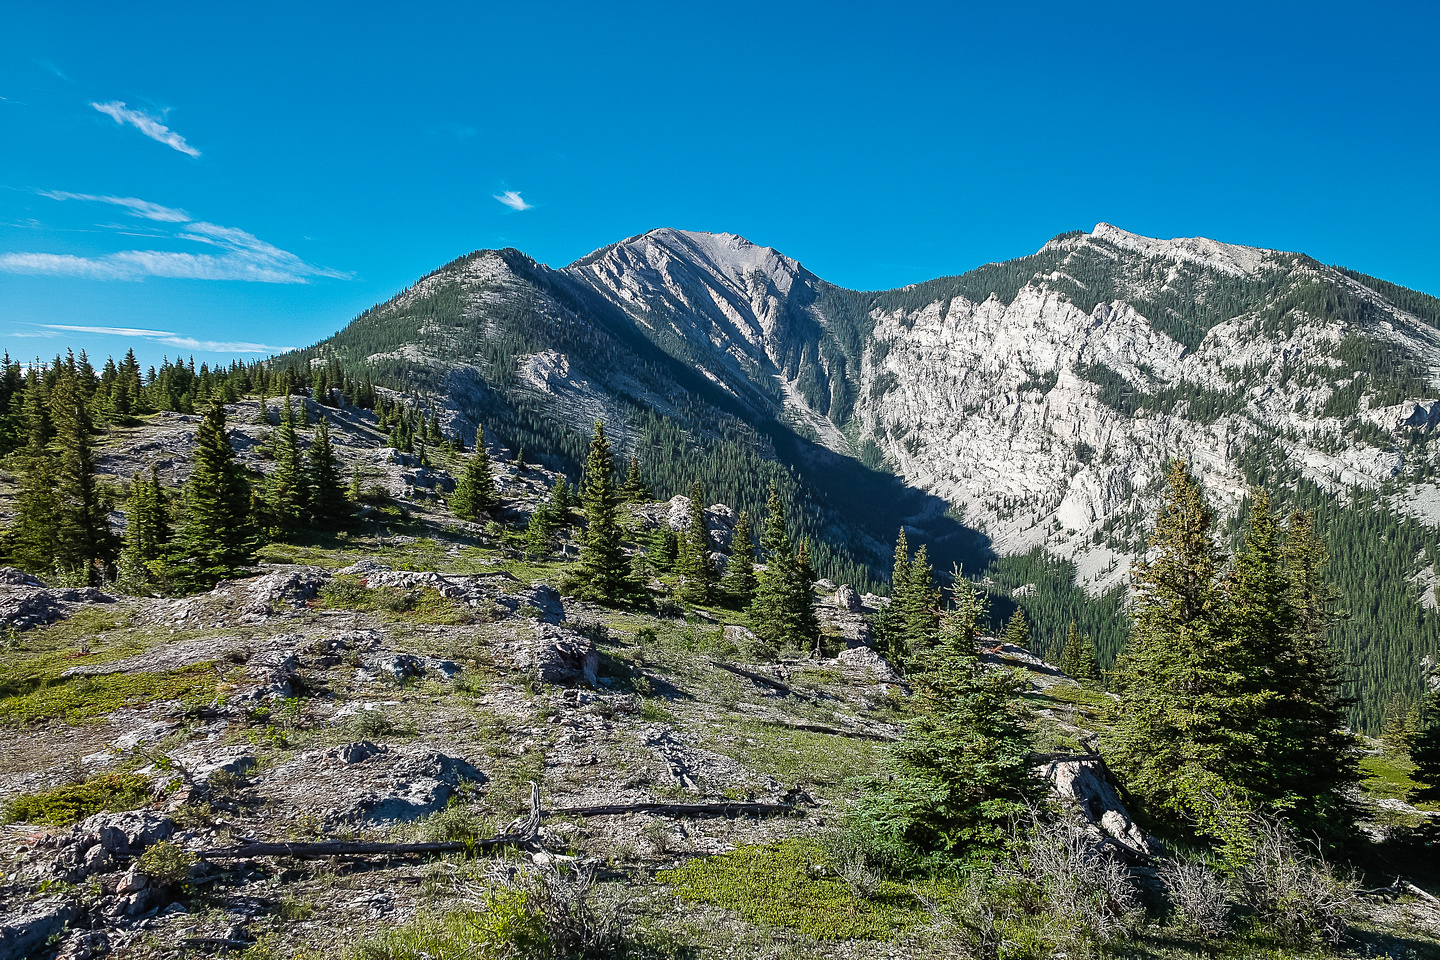 Breaking out of the trees, this is the wonderful view of the ridge ahead.